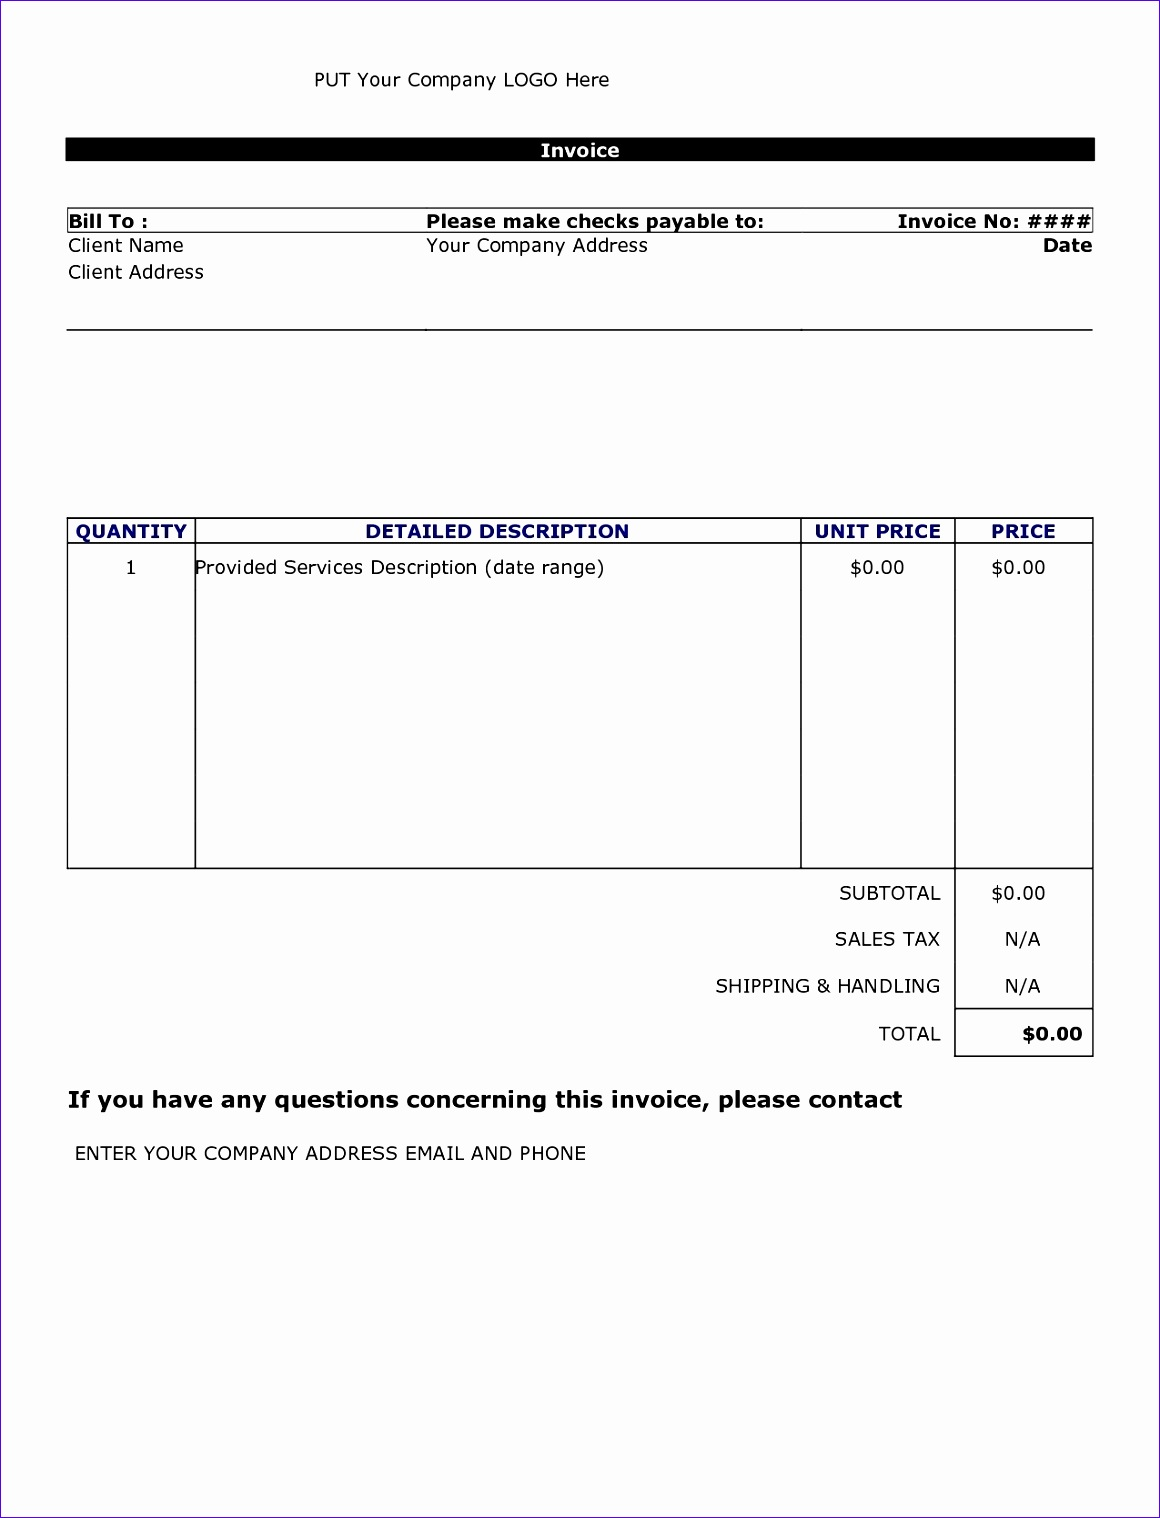 invoice sample doc 68